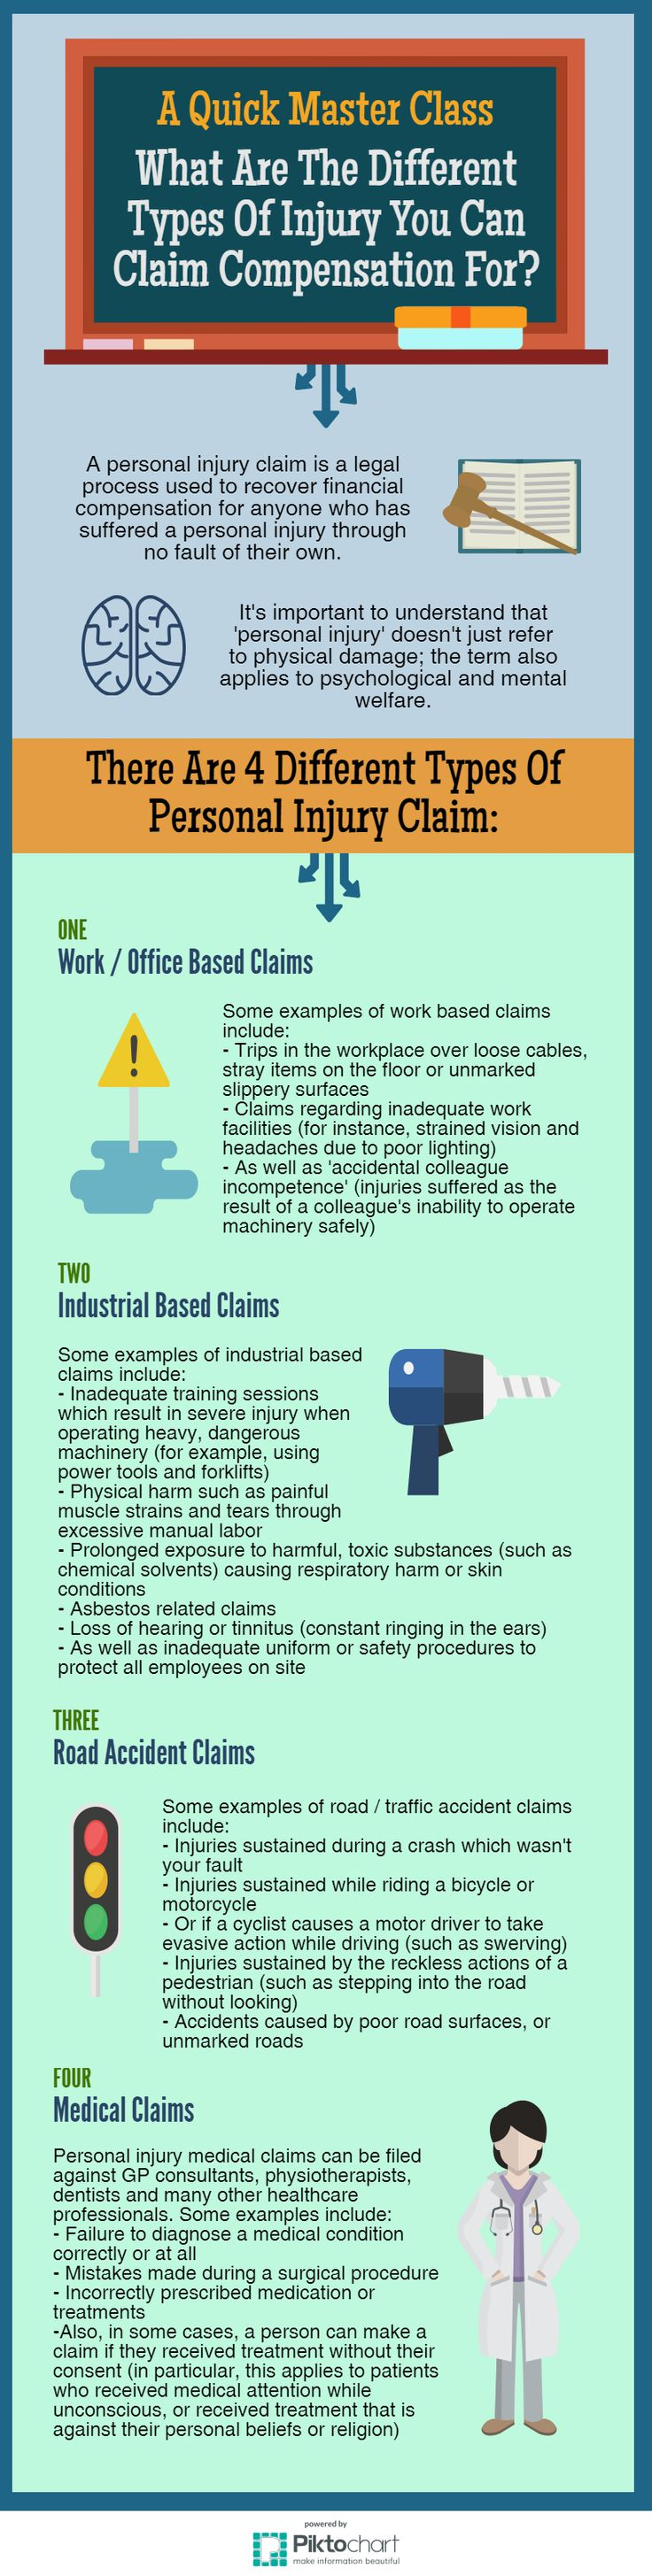 Here's an infographic on the four different types of personal injury claim!  You can view the original infographic here: https://magic.piktochart.com/output/22032726-4-types-of-injury-claims  For further information on personal injury claims please visit our website: http://www.ibbotsonbrady.co.uk/w/  Our address: Park House, Park Square West, Leeds Telephone: 0113 357 1165